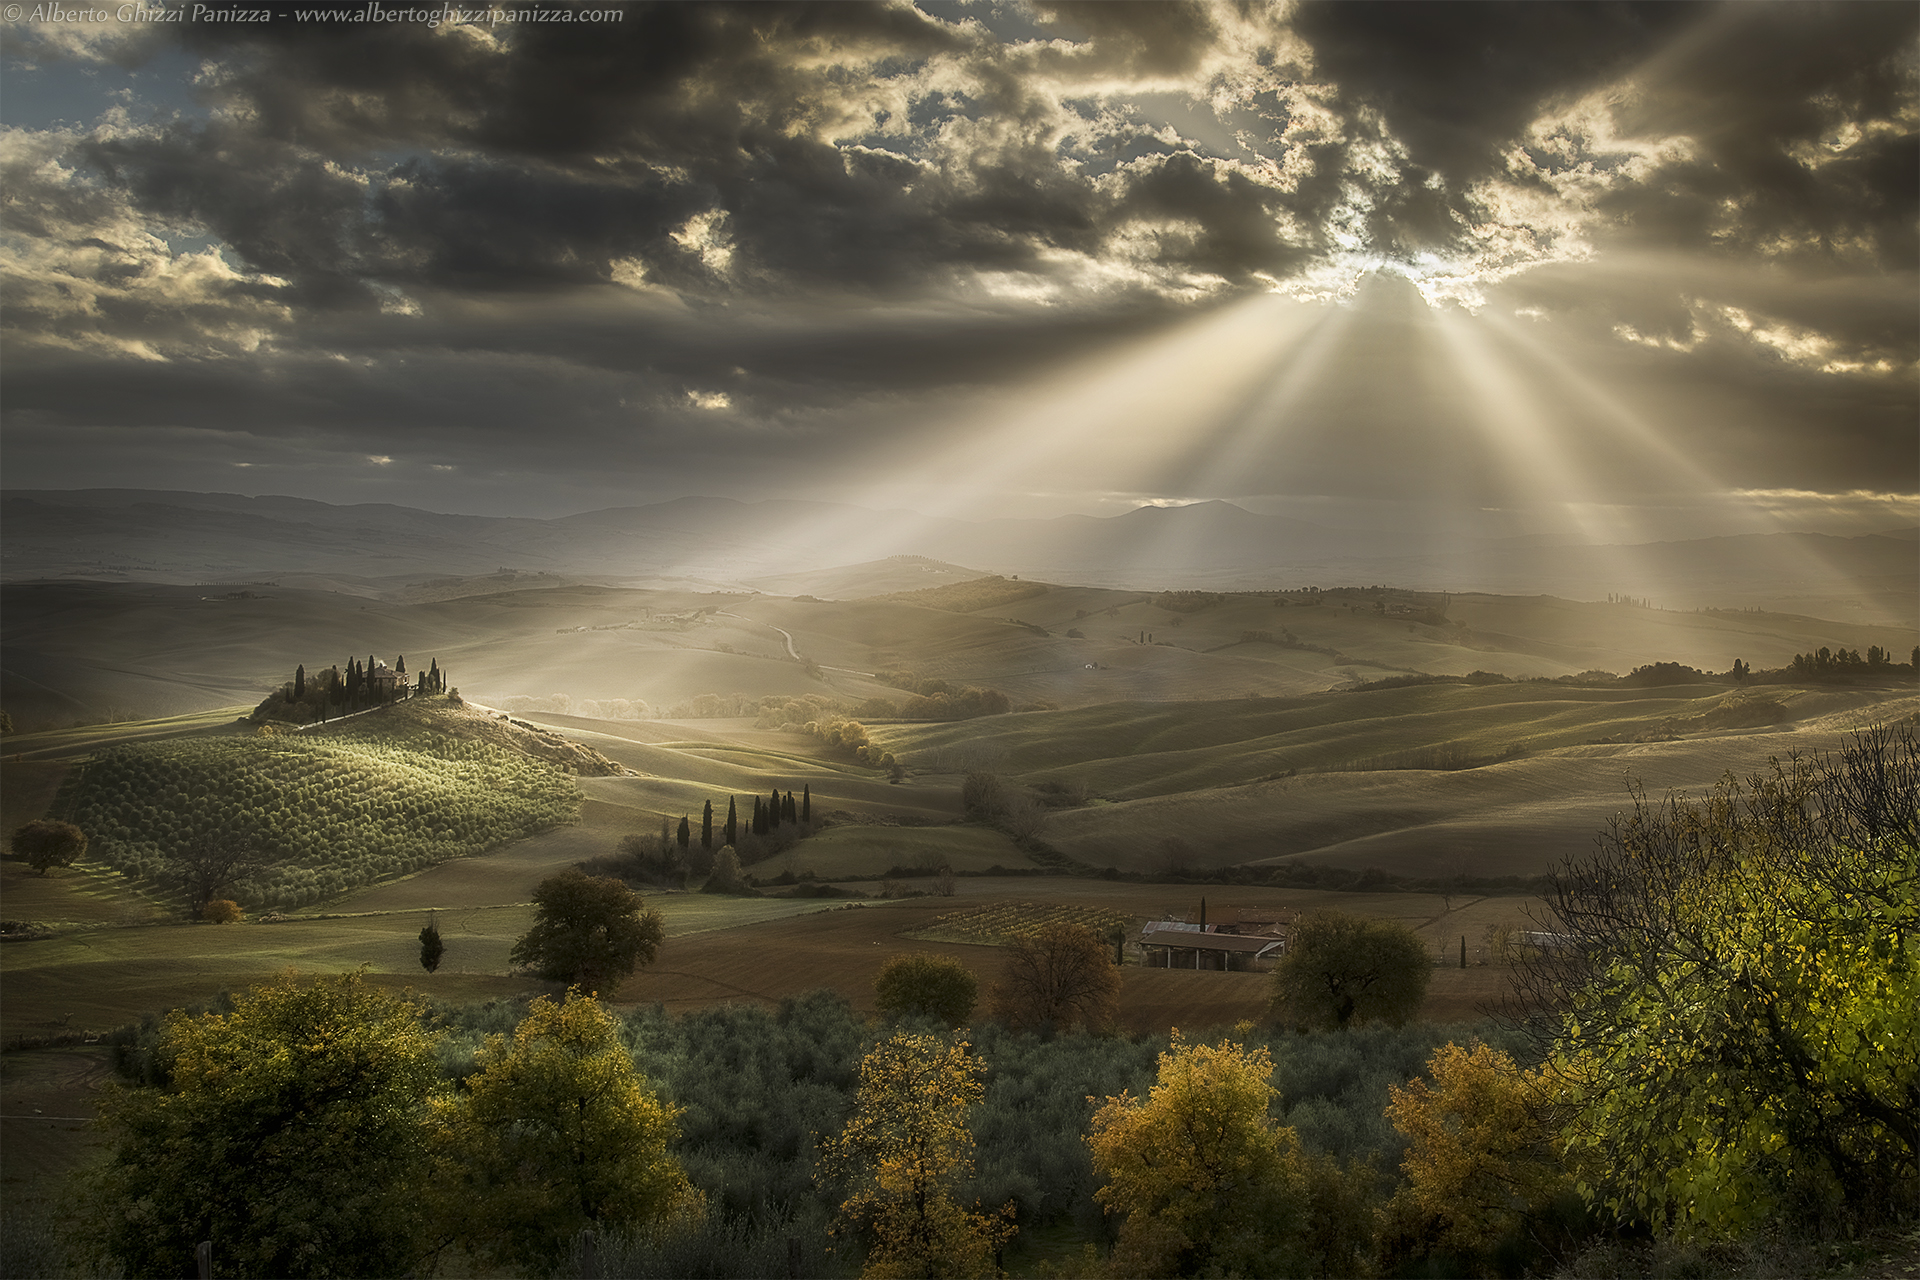 The rays of the sun caress the hills...